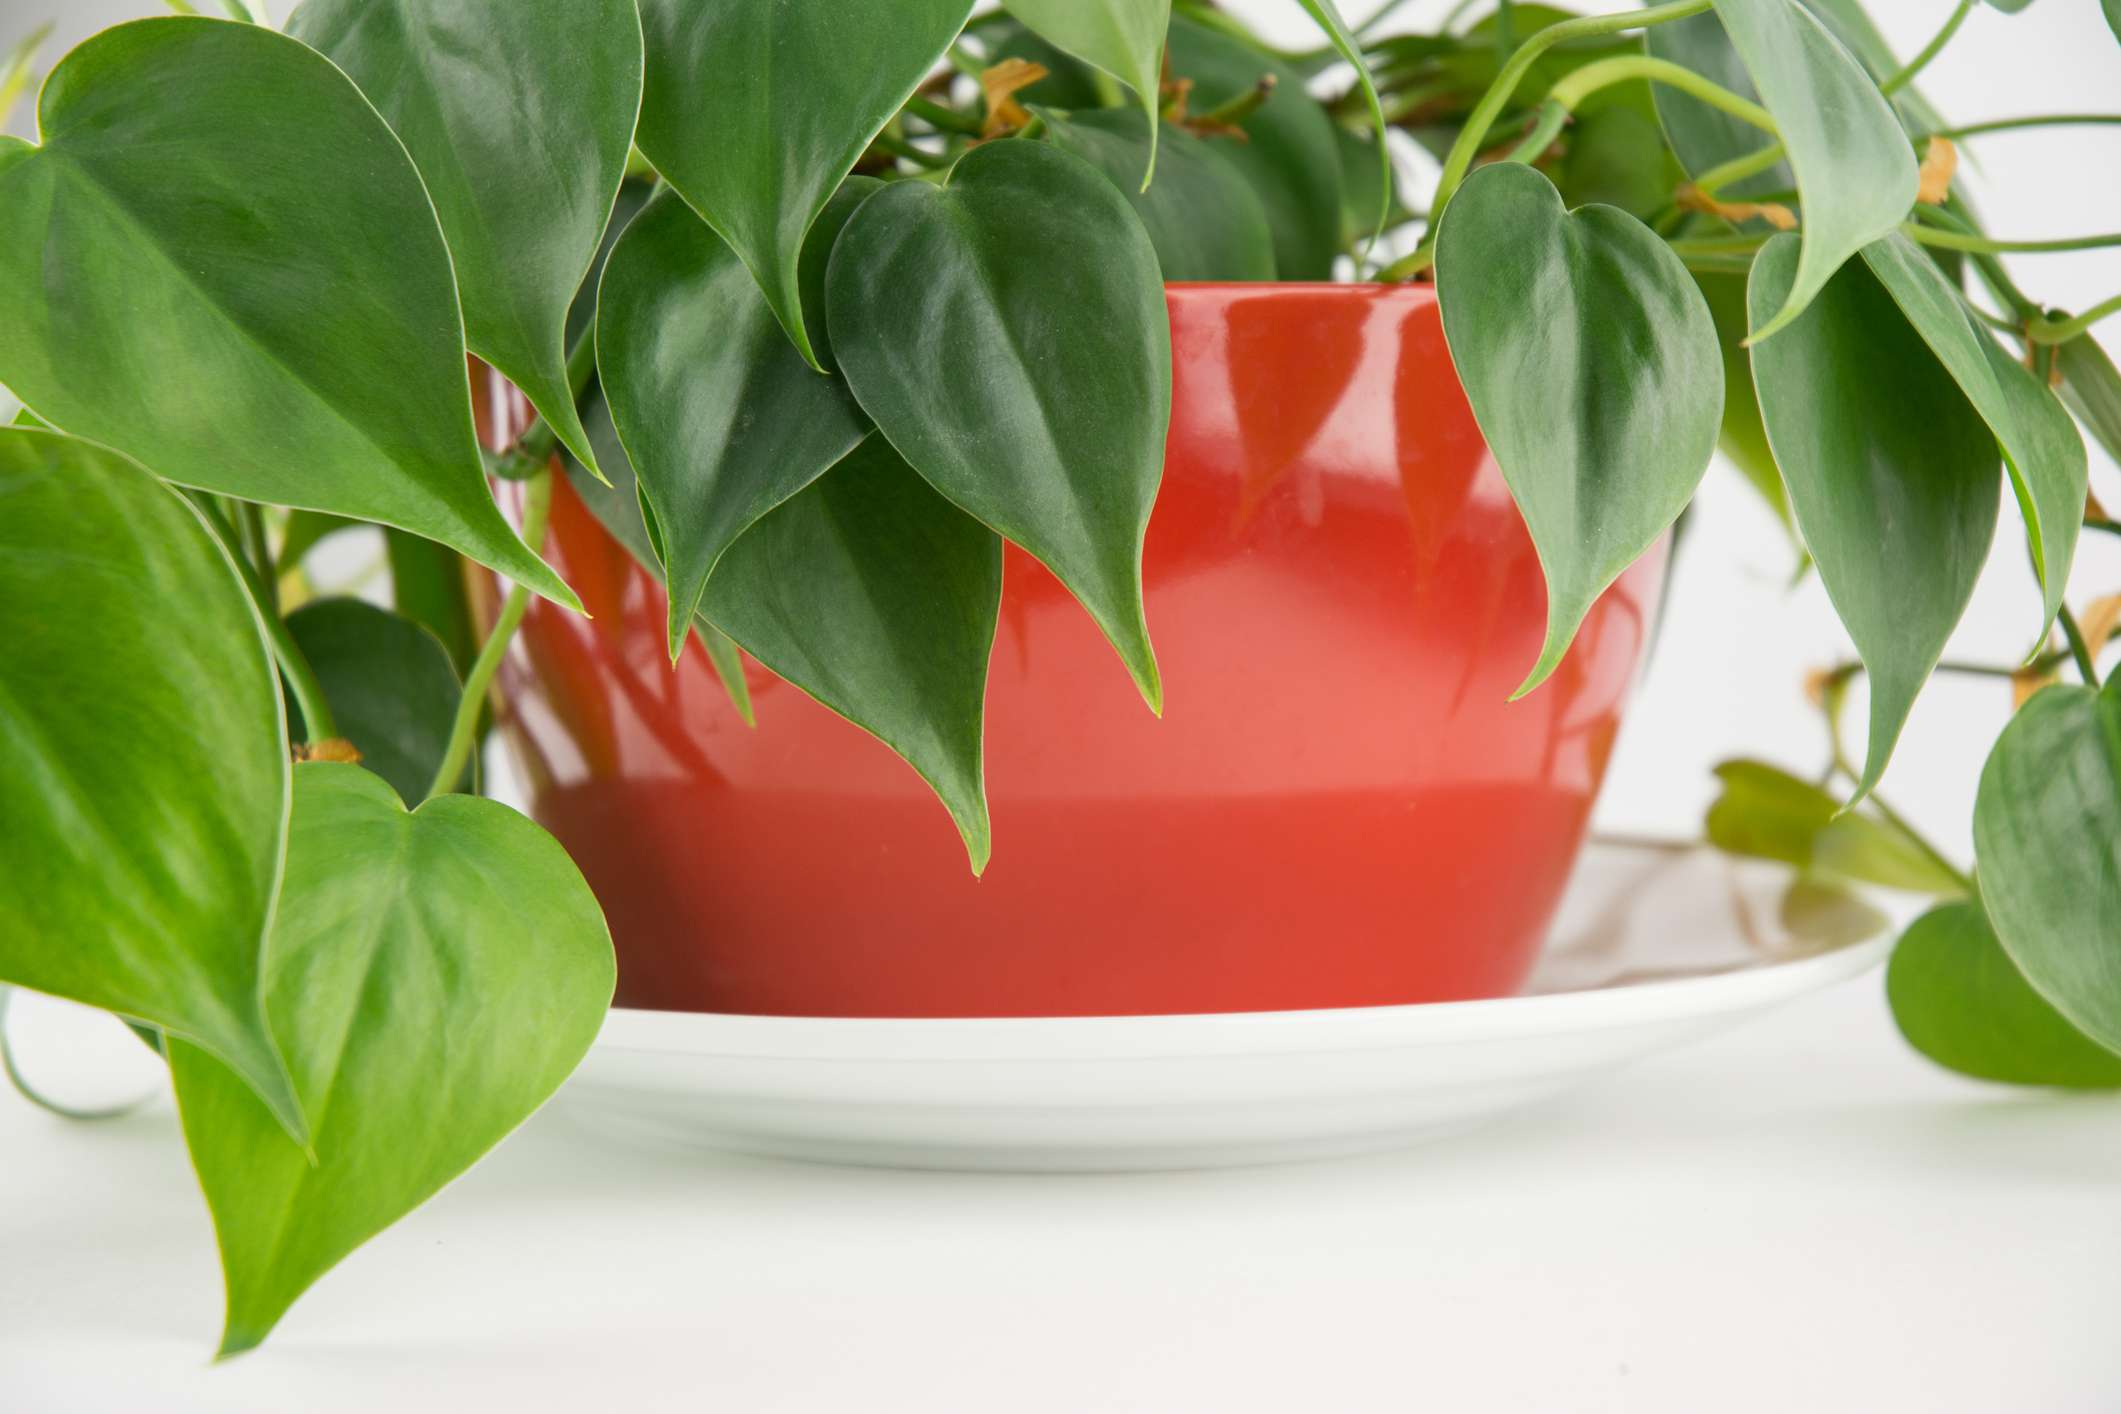 Philodendron houseplant in a red pot